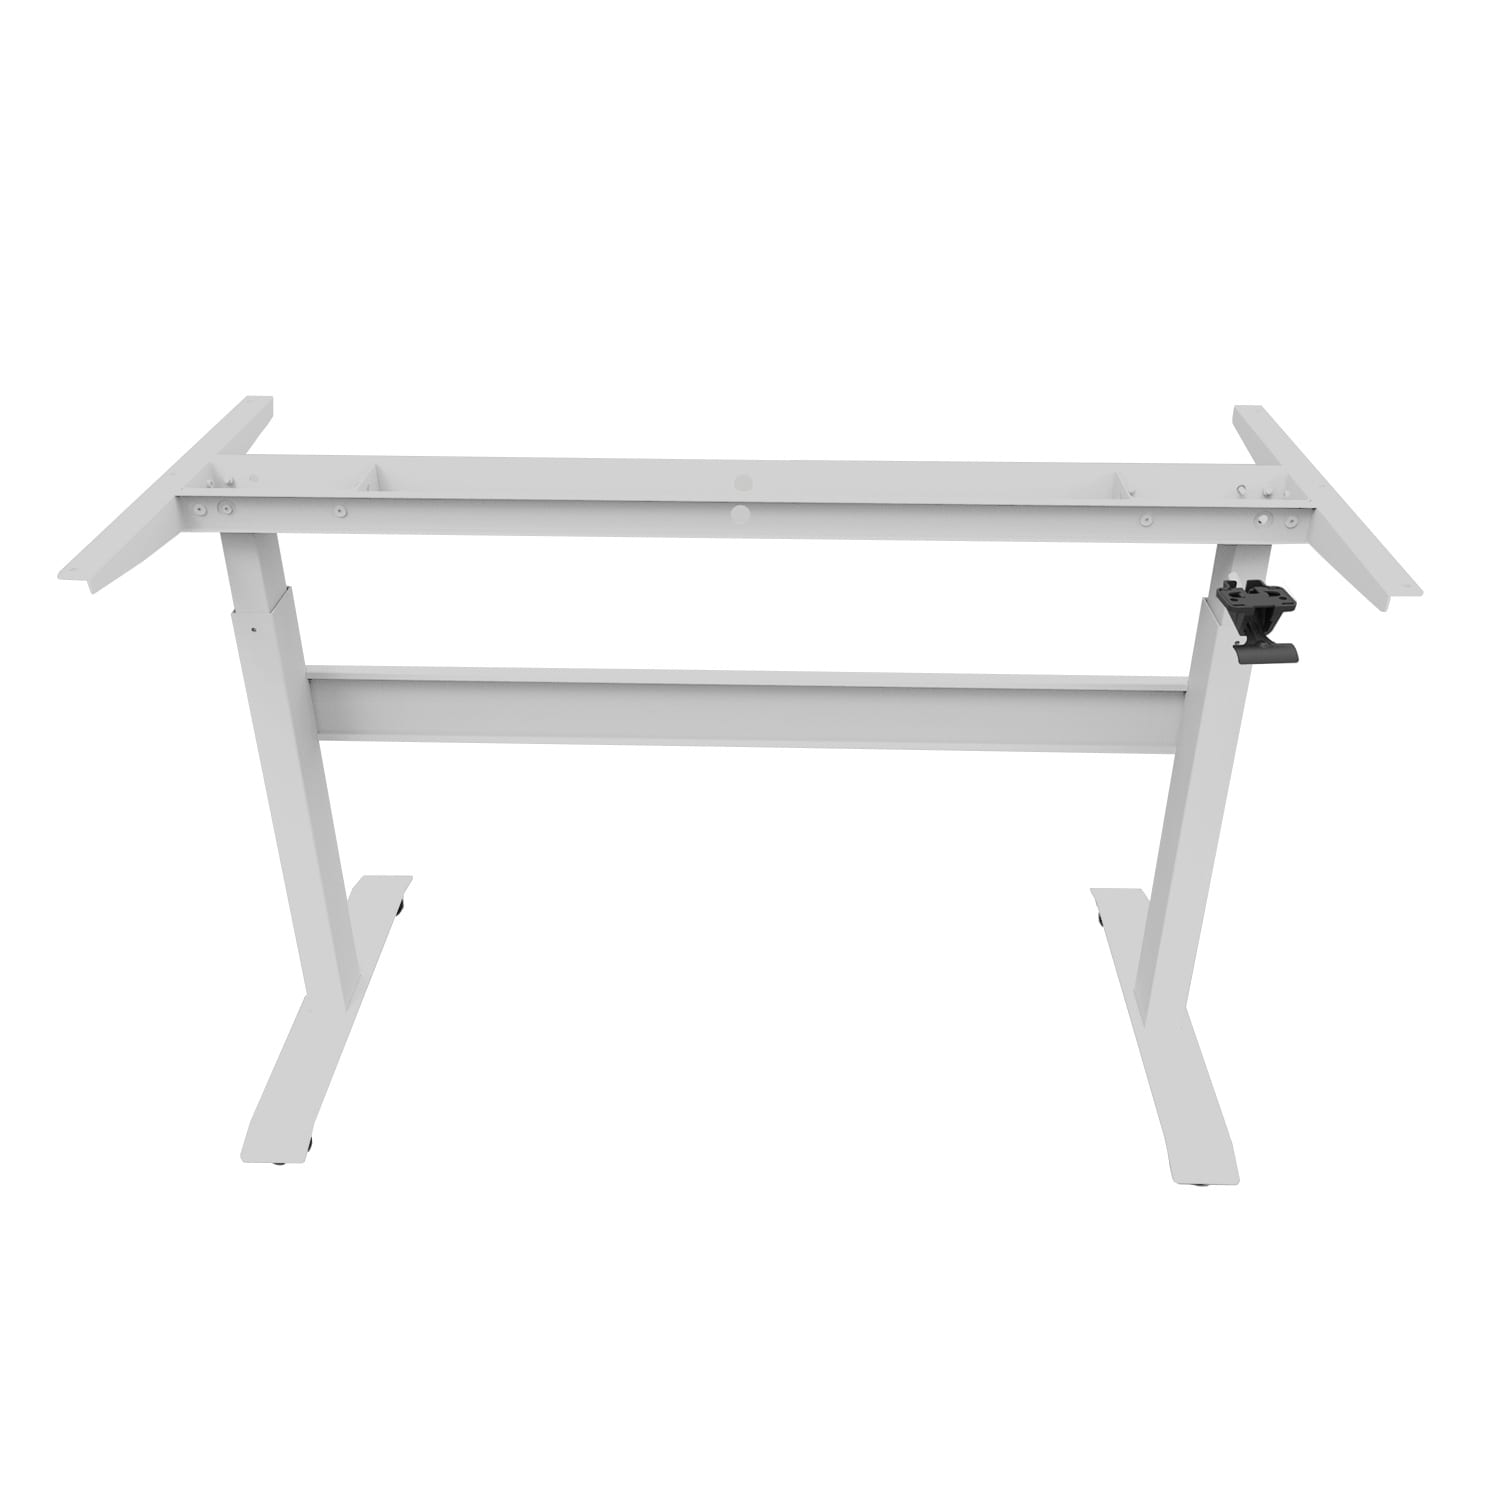 GDF02M gas spring height adjustable standing desk / sit-stand workstation frame